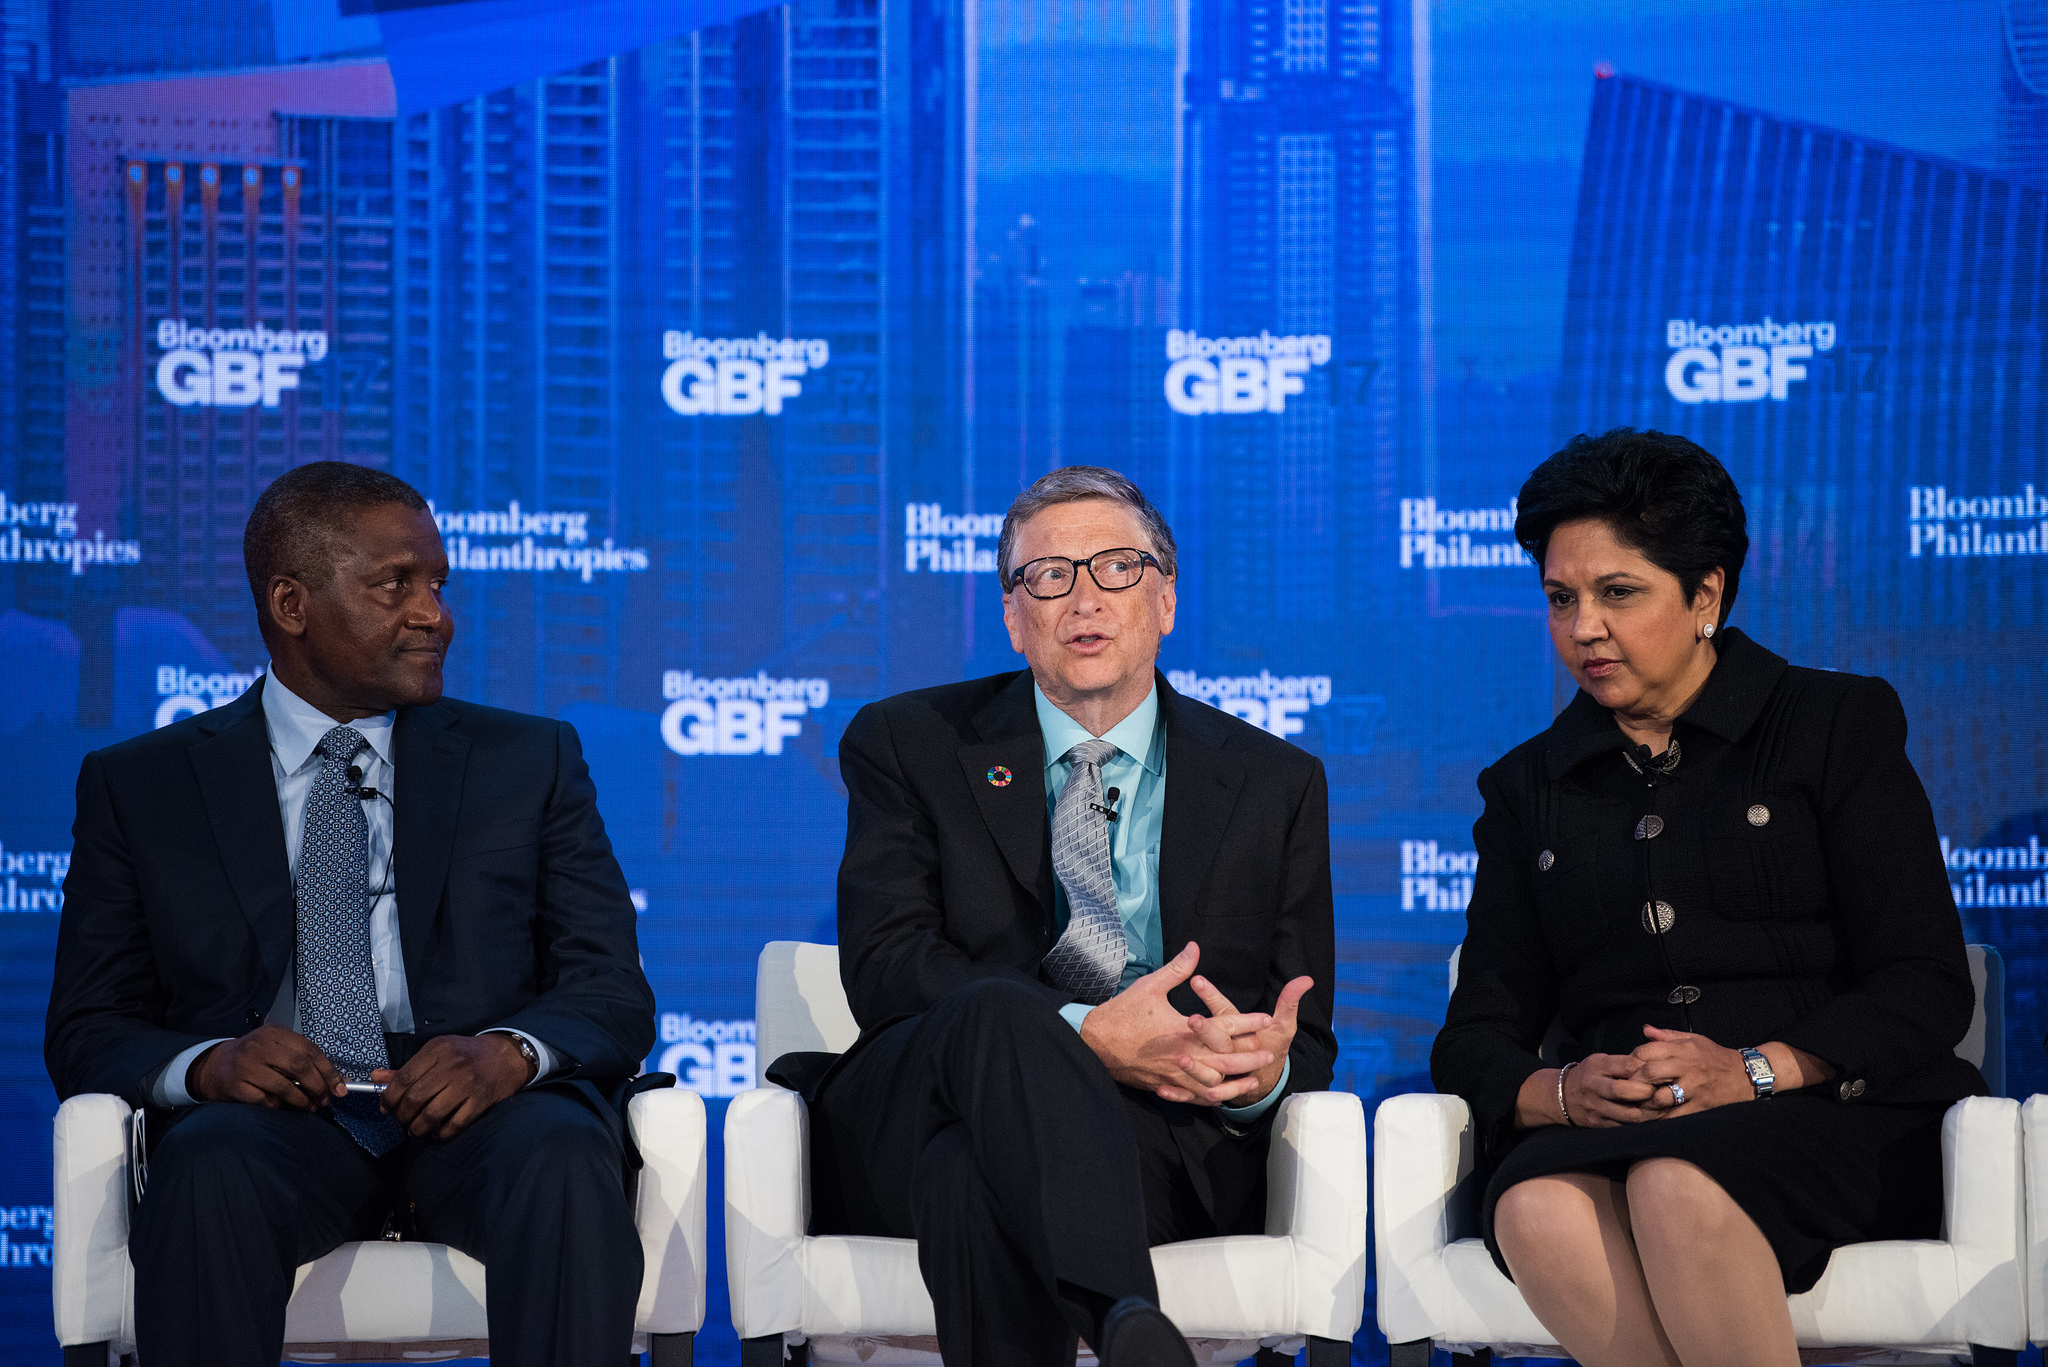 photo: Aliko Dangote with Bill Gates, and pepsico's Indra Nooyi. photo: Bloomberg global business forum/flickr-CC BY-NC-ND 2.0